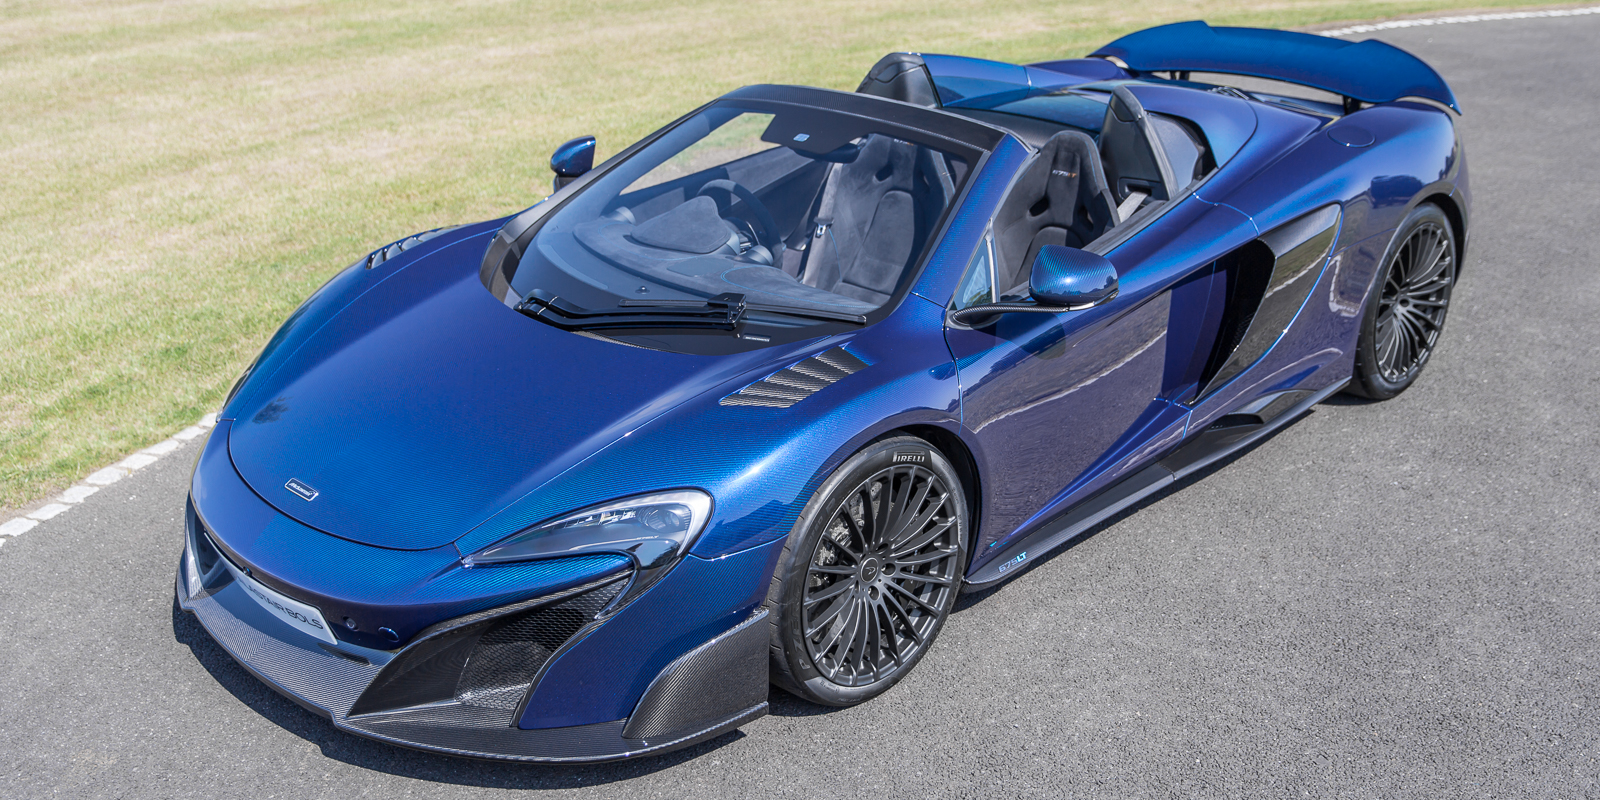 McLaren 675LT Spider Carbon Series in Blue metallic